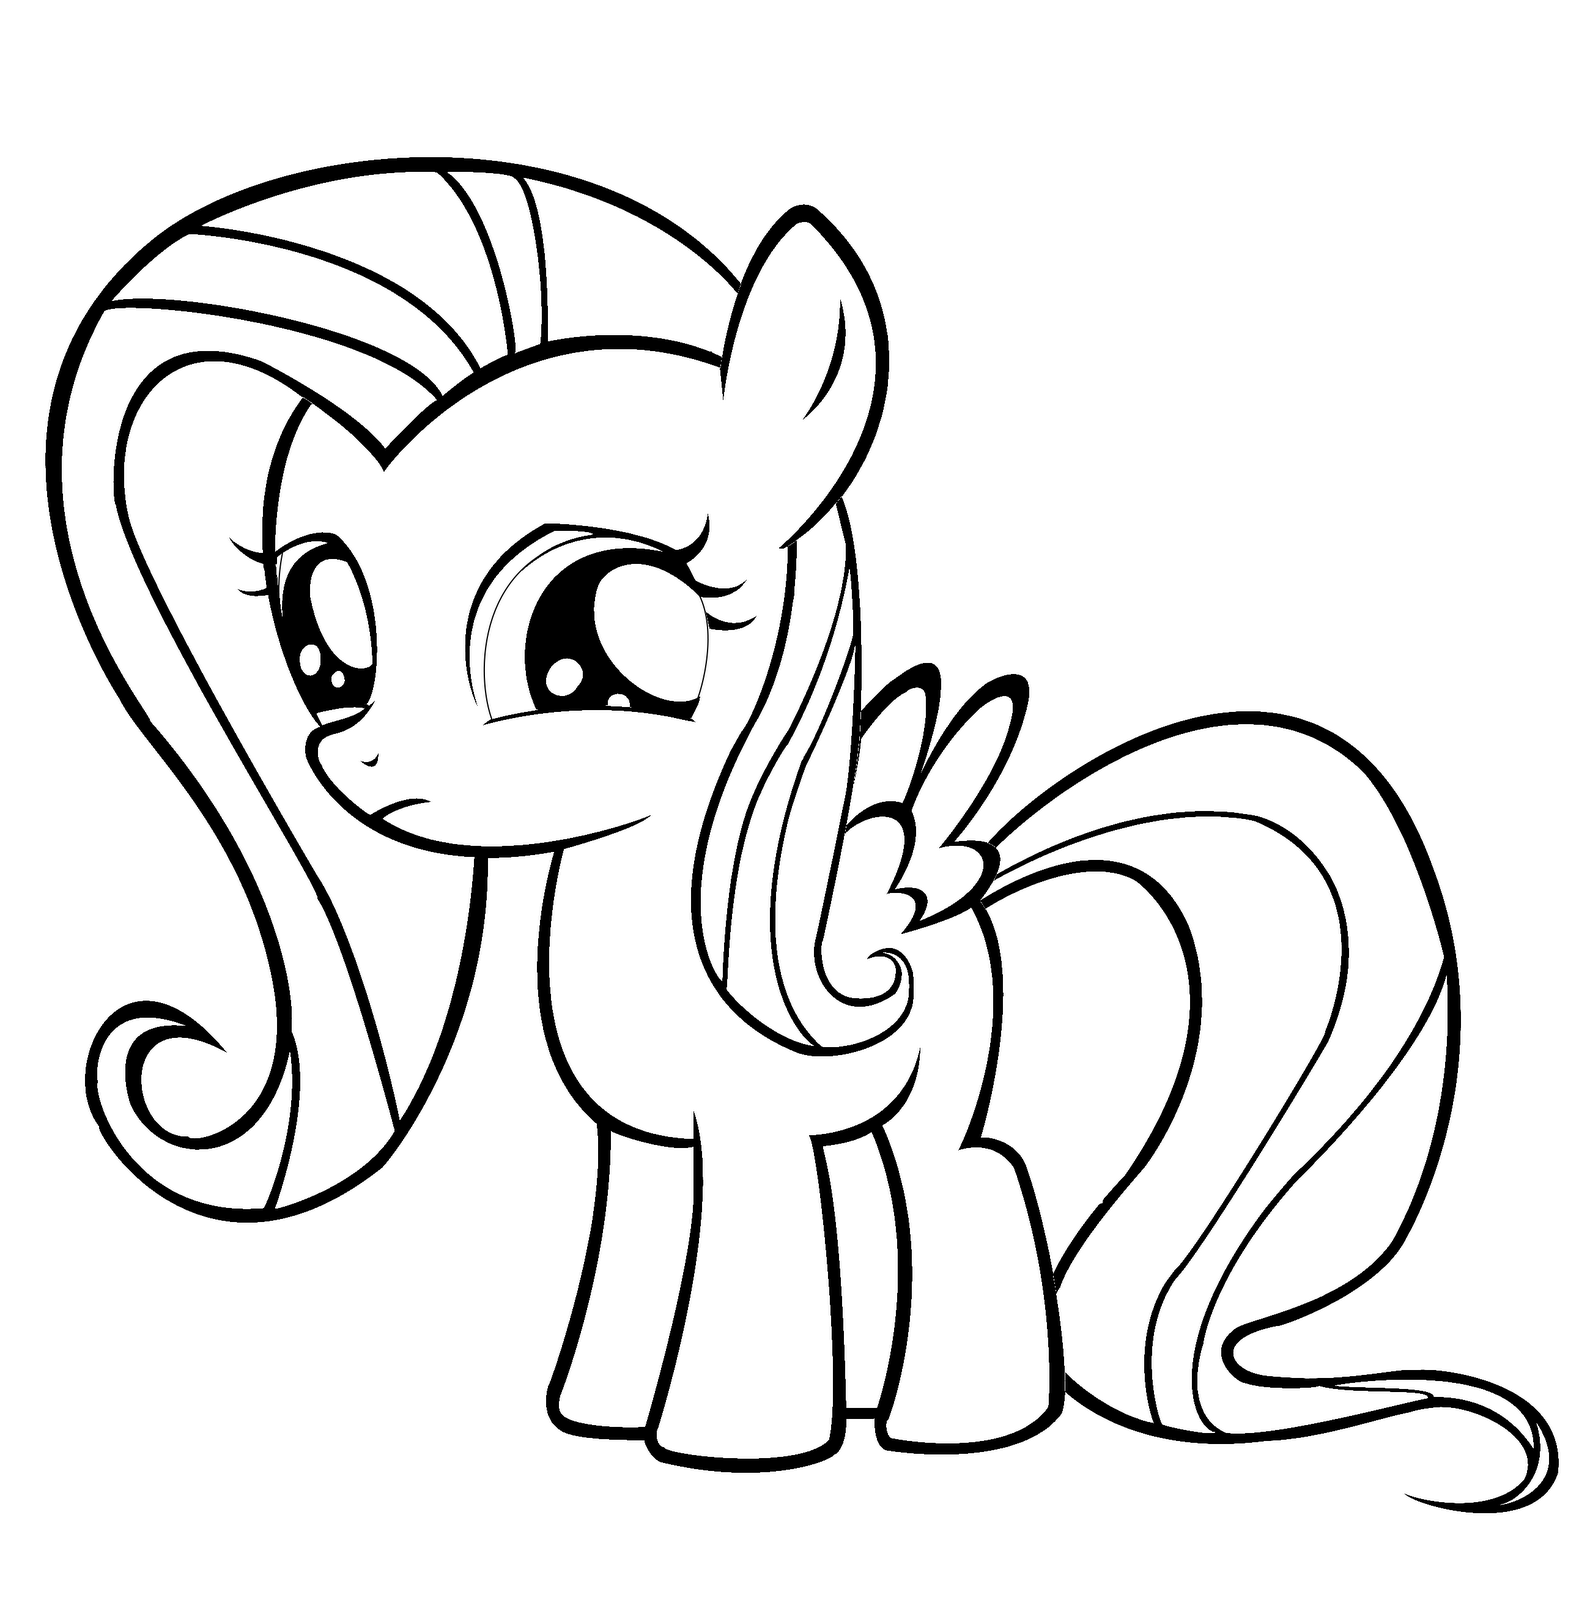 Fluttershy Coloring Pages Best Coloring Pages For Kids Print Coloring Pages For